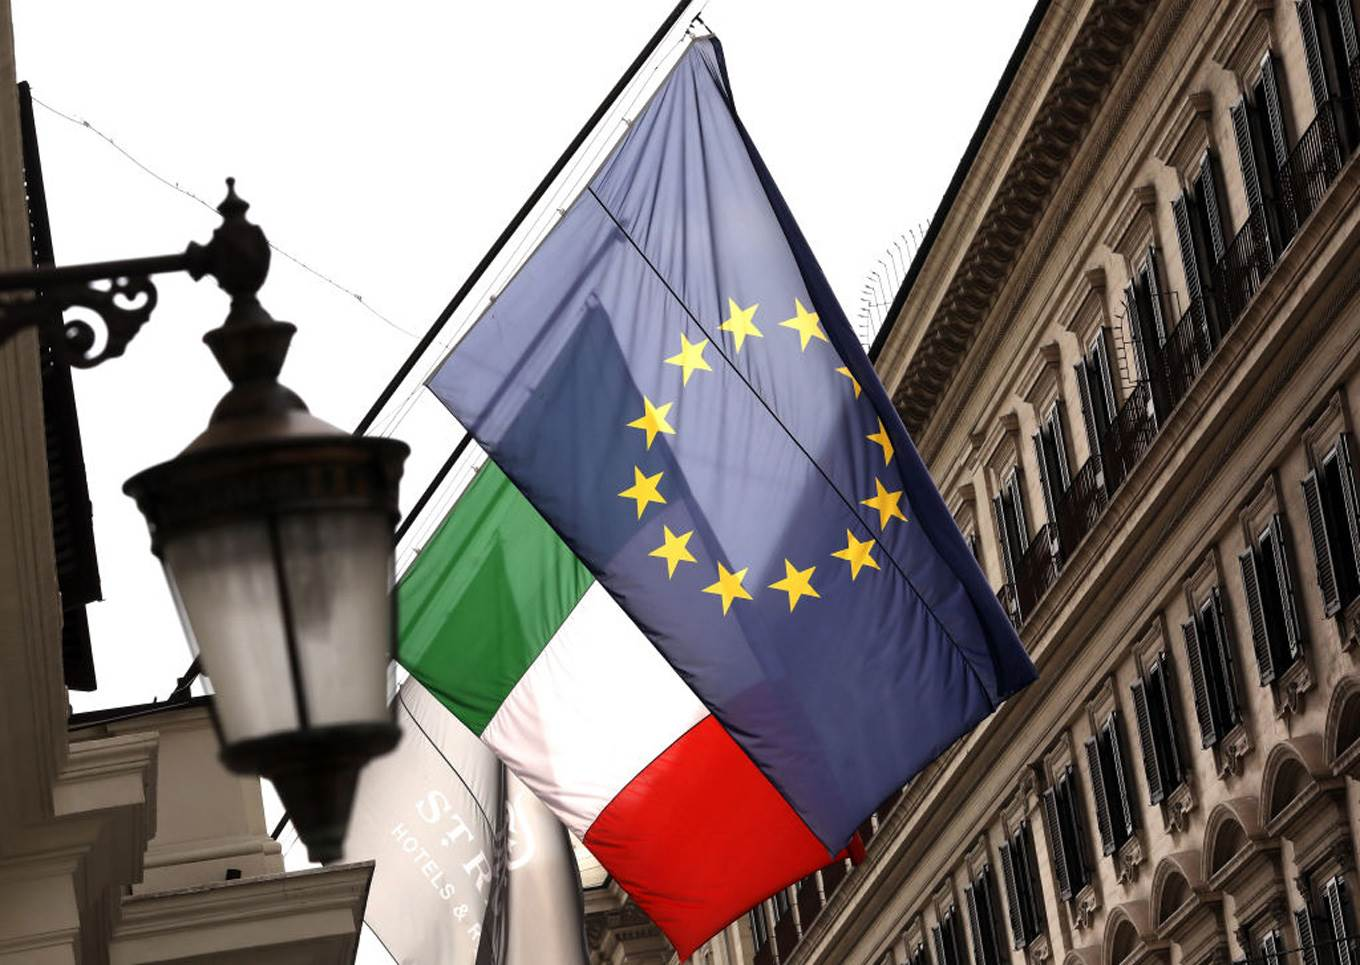 Will Italy sink Europe? - OPINION